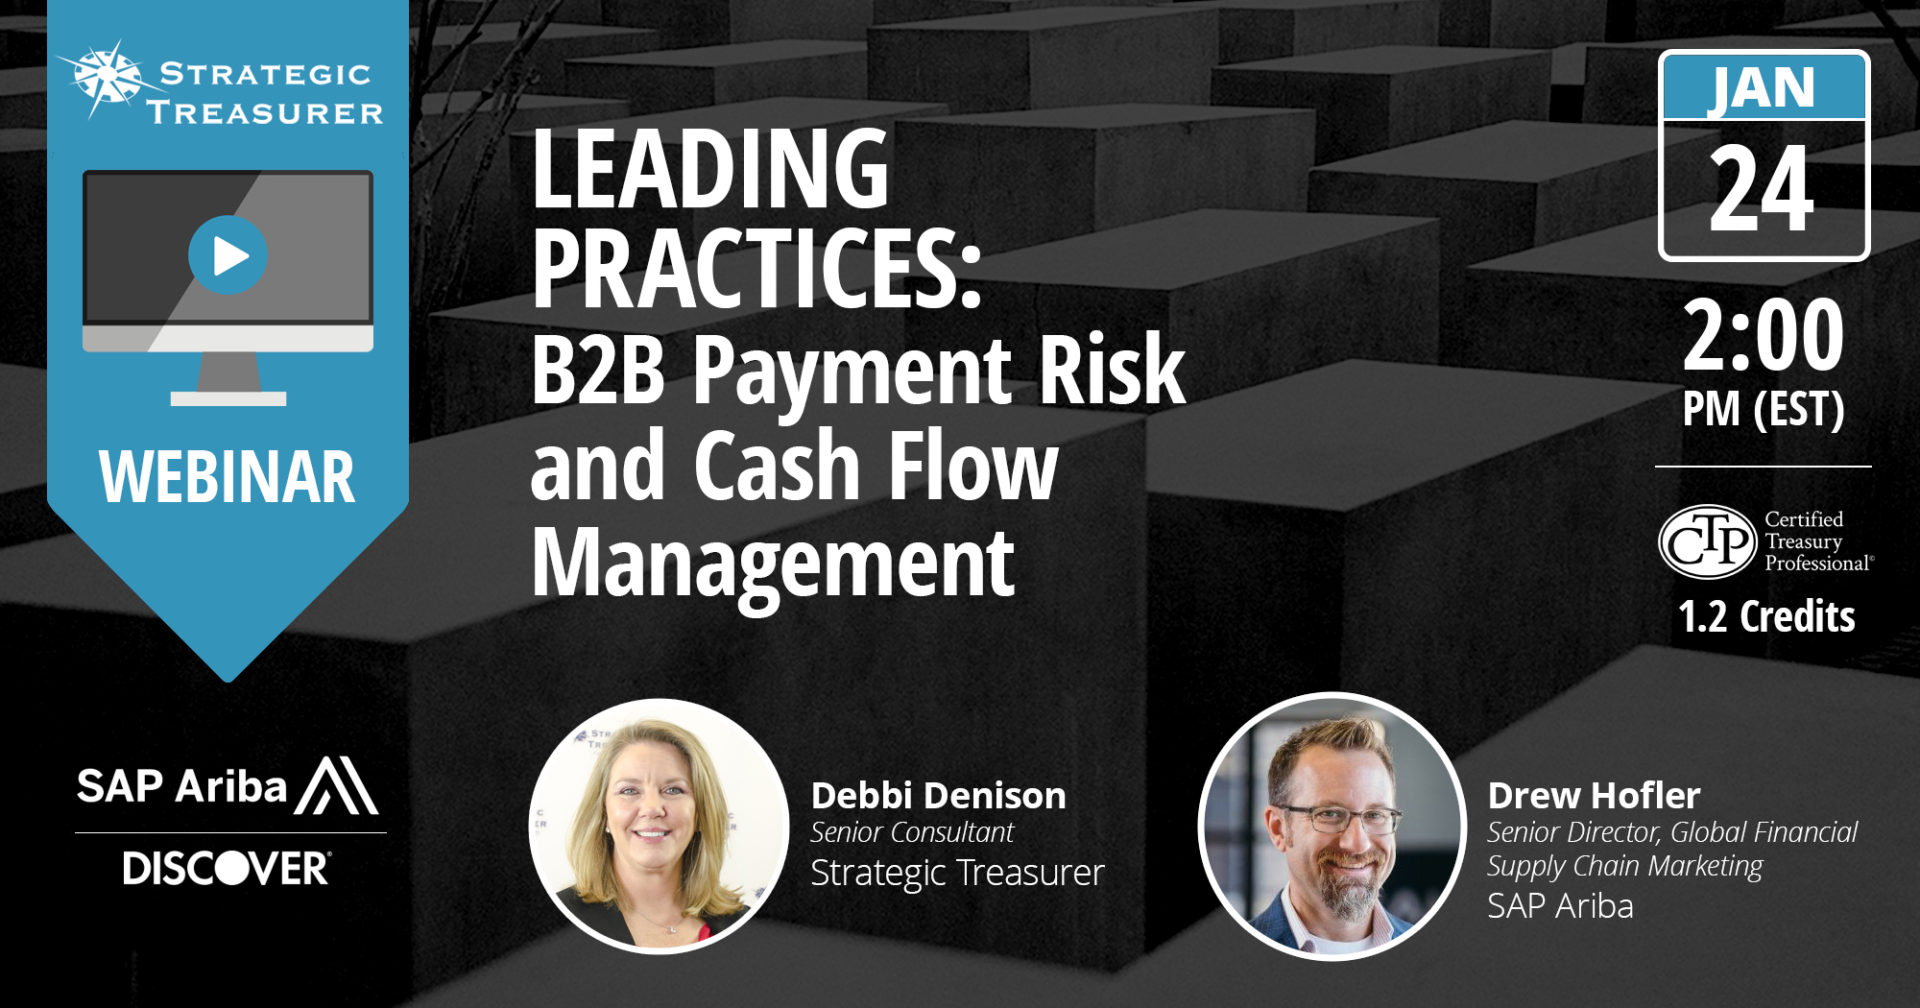 Leading Practices: B2B Payment Risk and Cash Flow Management Webinar